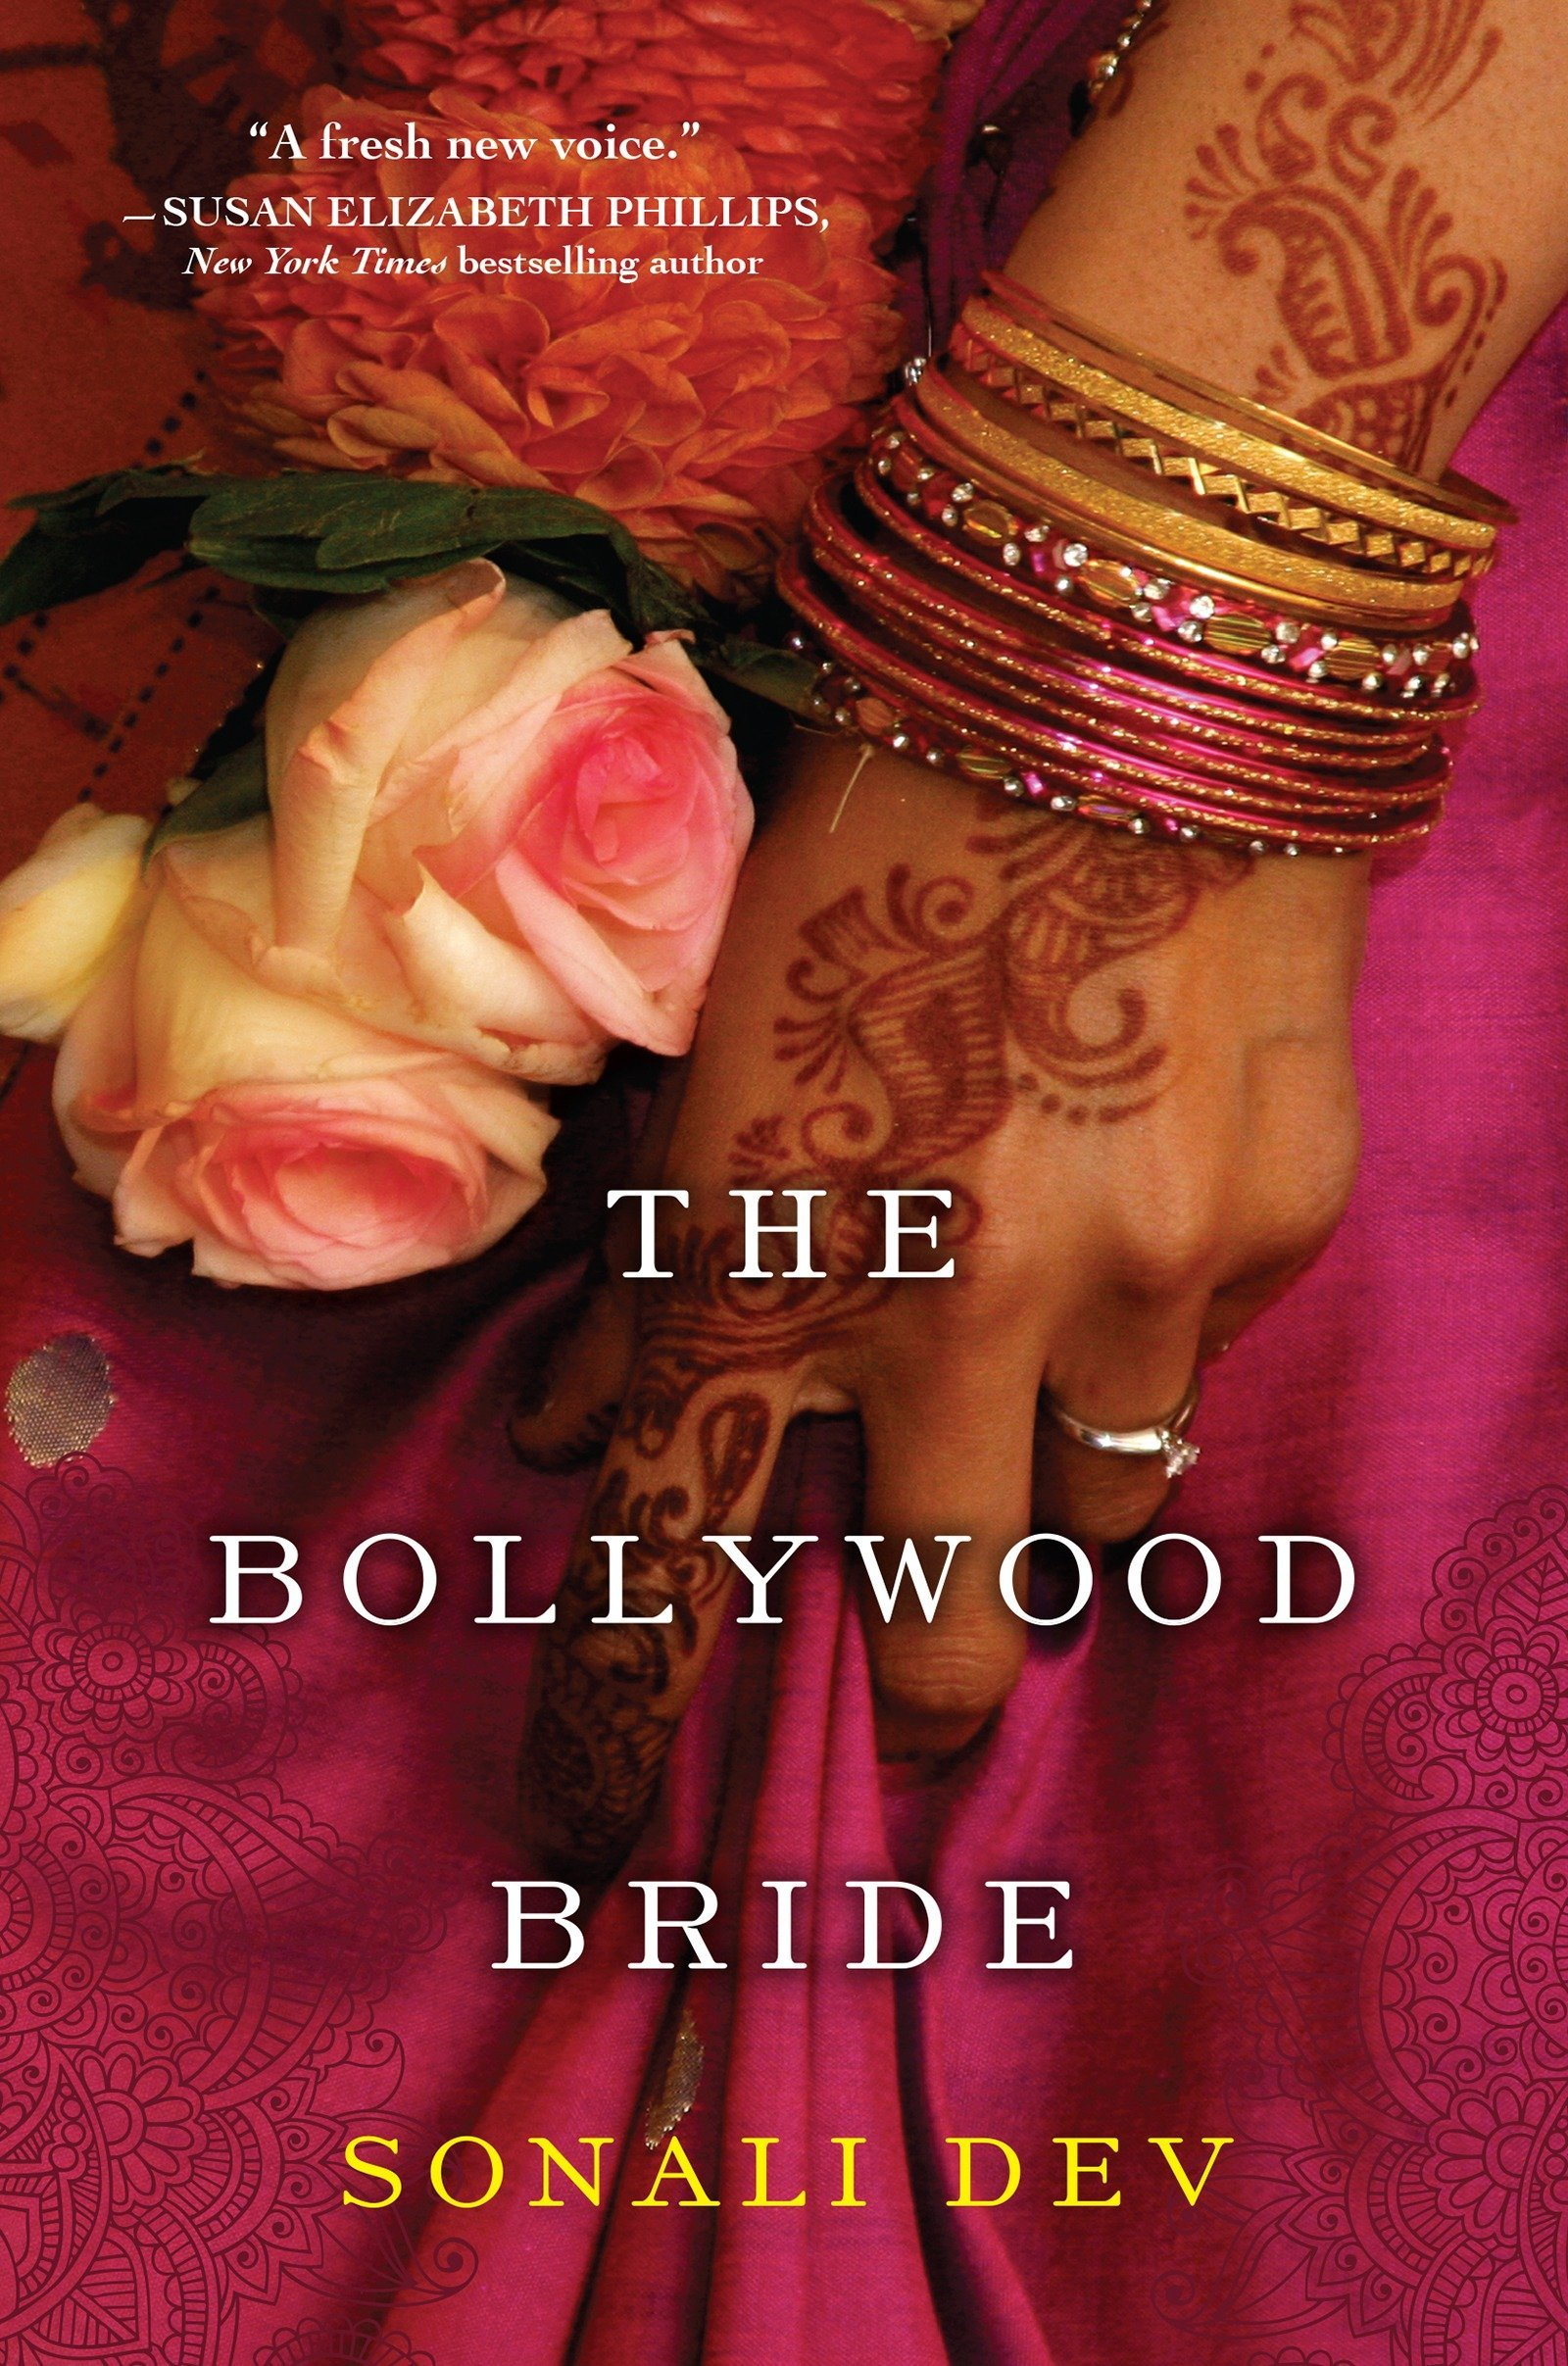 Download The Bollywood Bride pdf